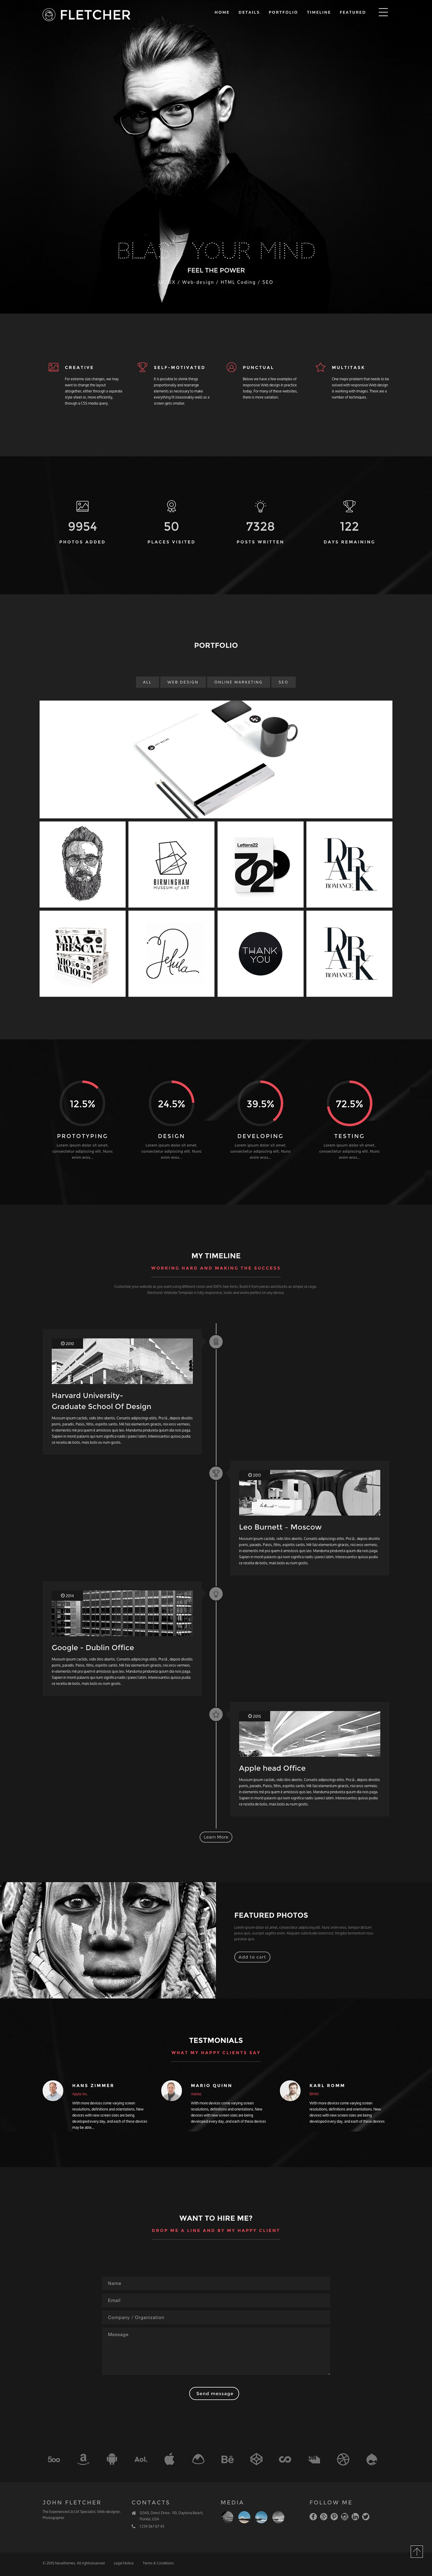 39 fletcher 39 is a one page html template that aims to for Pres a ply templates